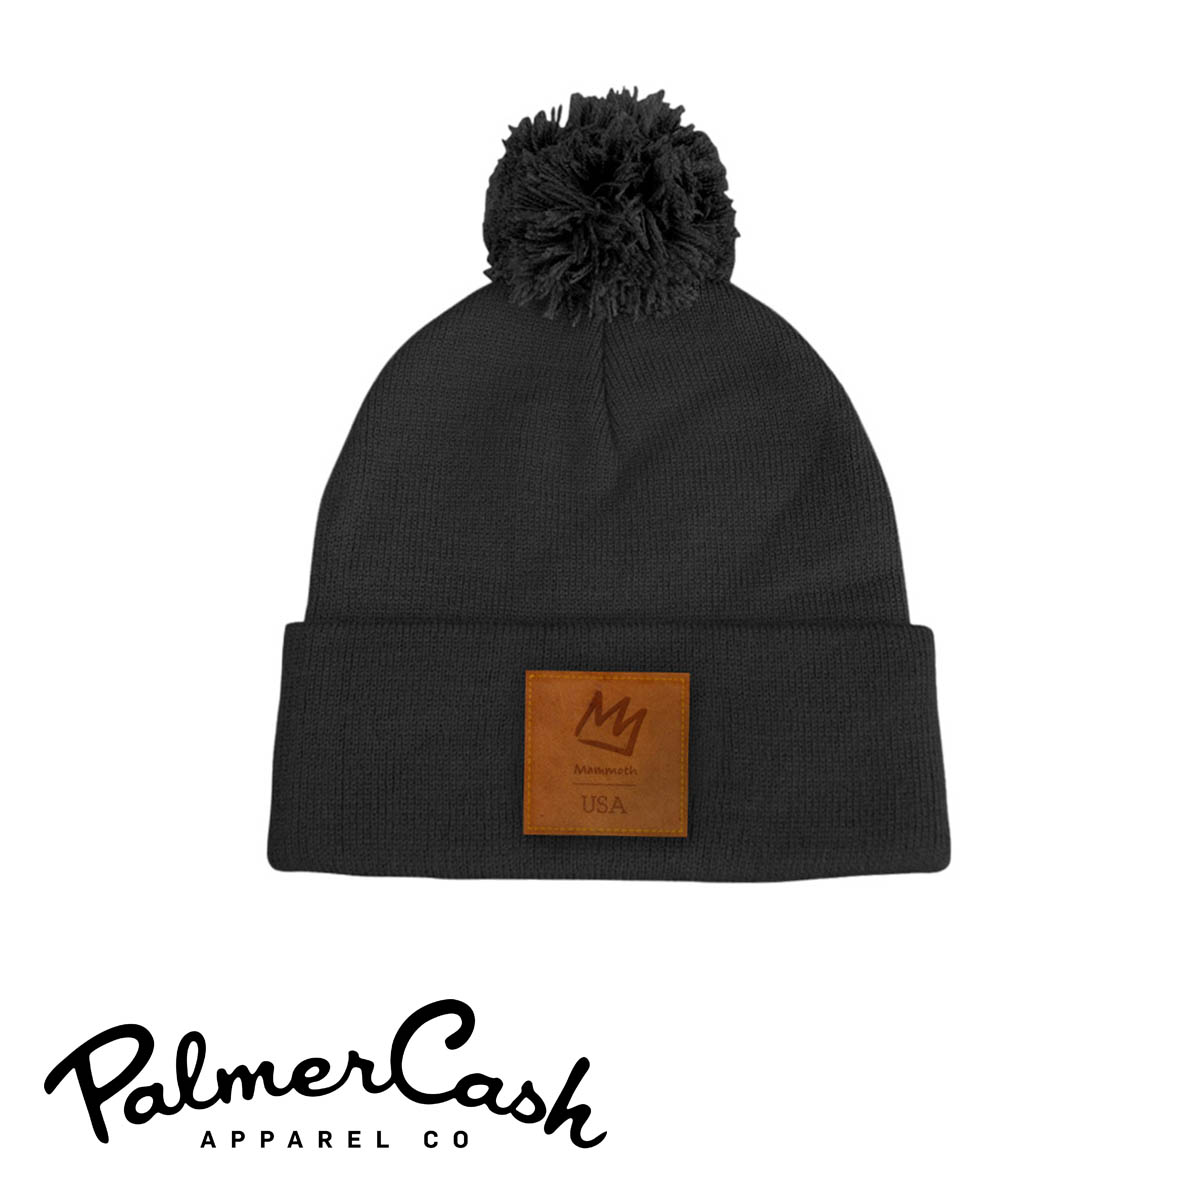 PC_Beanie_Mammoth_LeatherPatch_Web.jpg